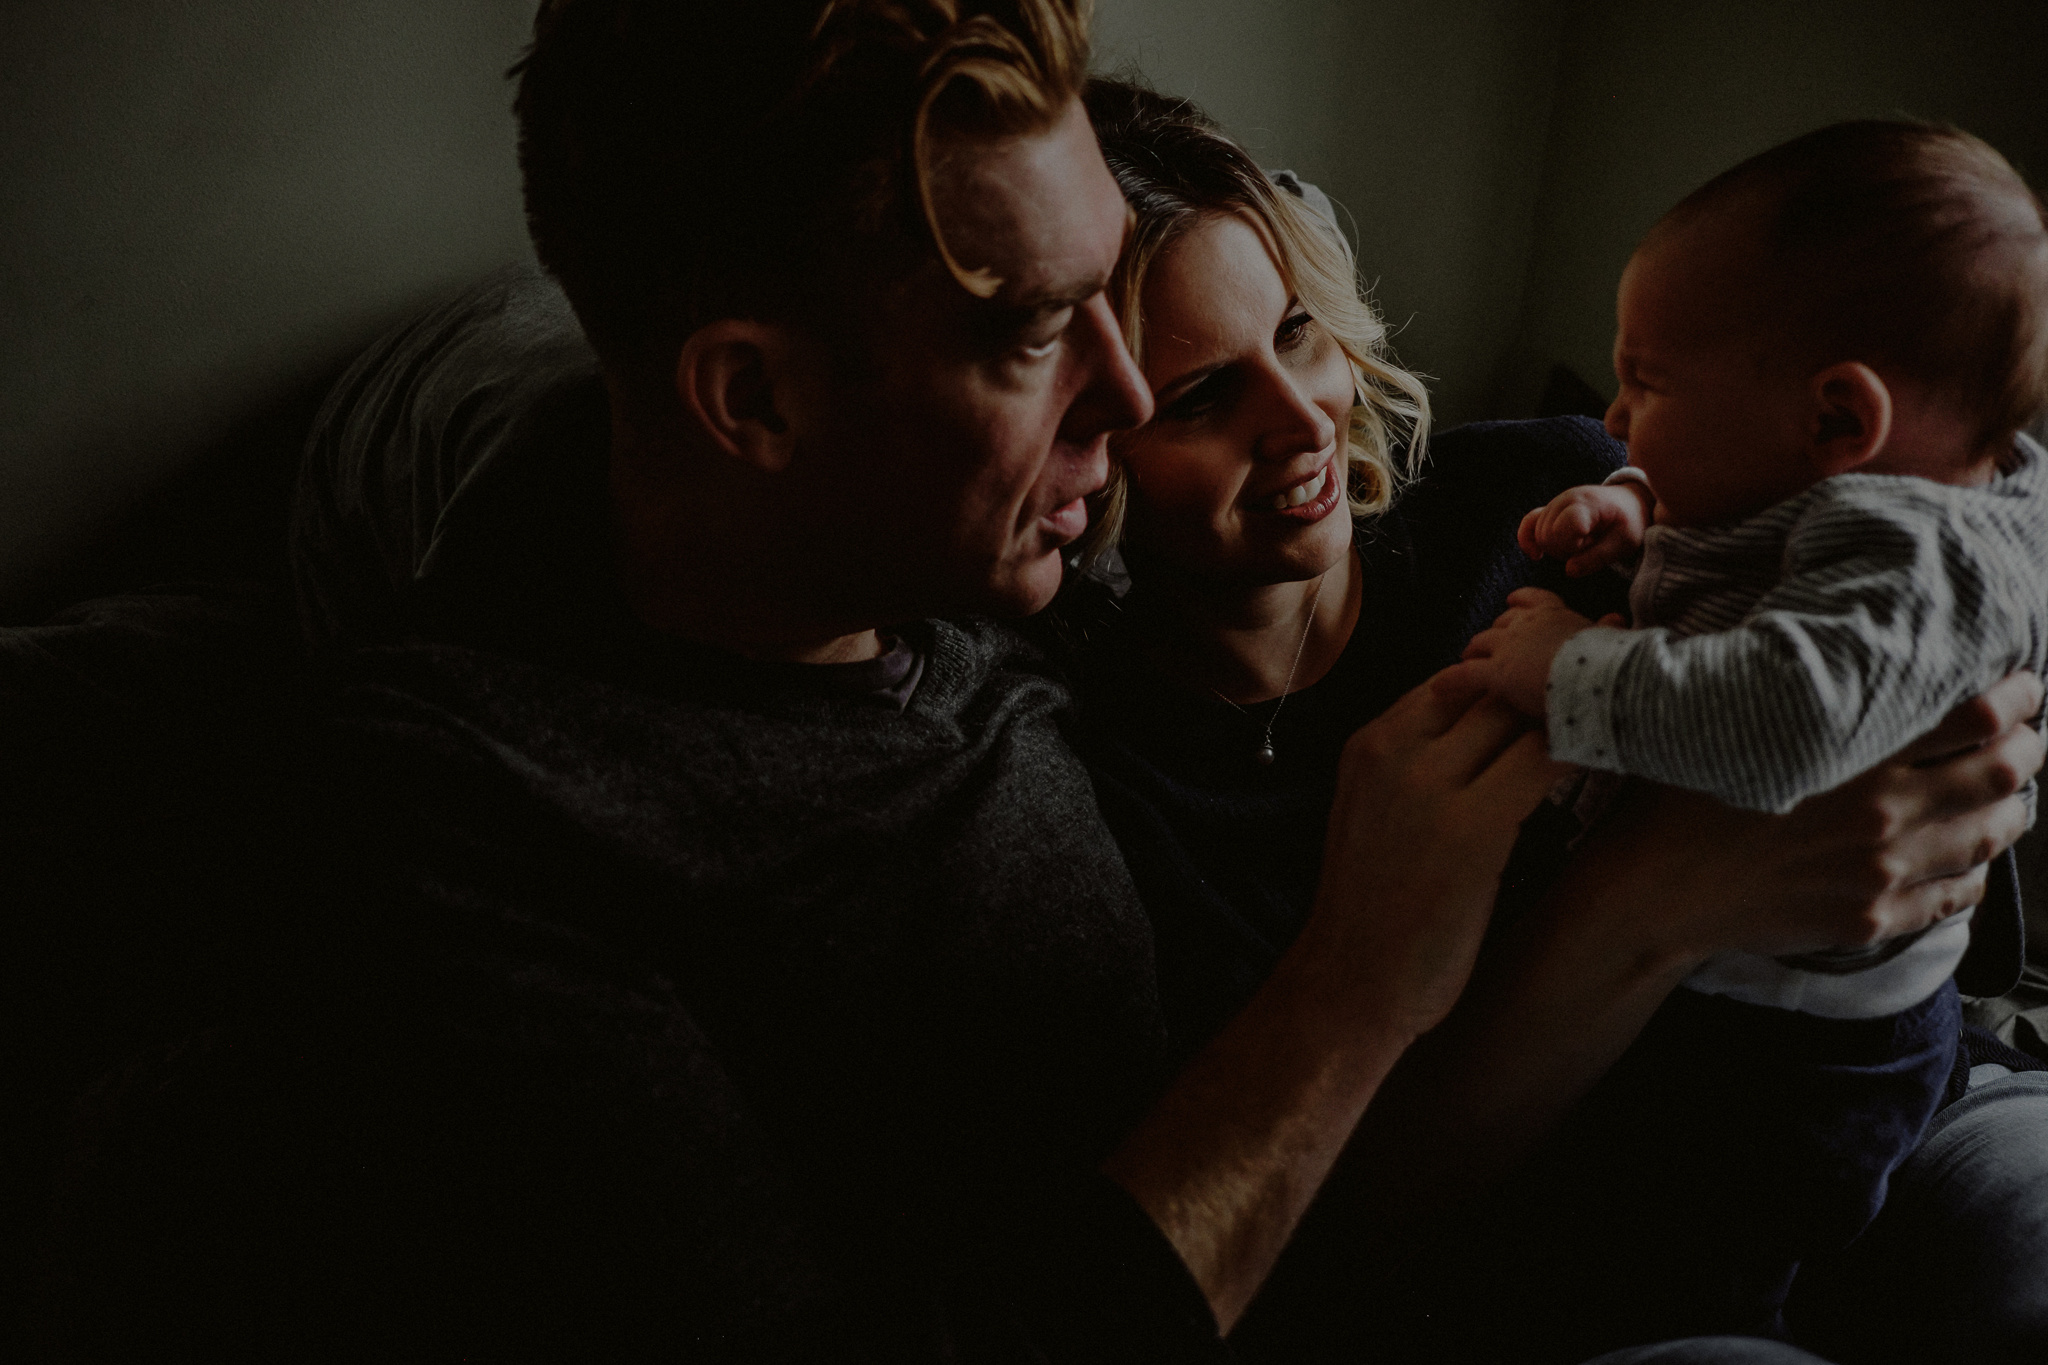 candid family photography